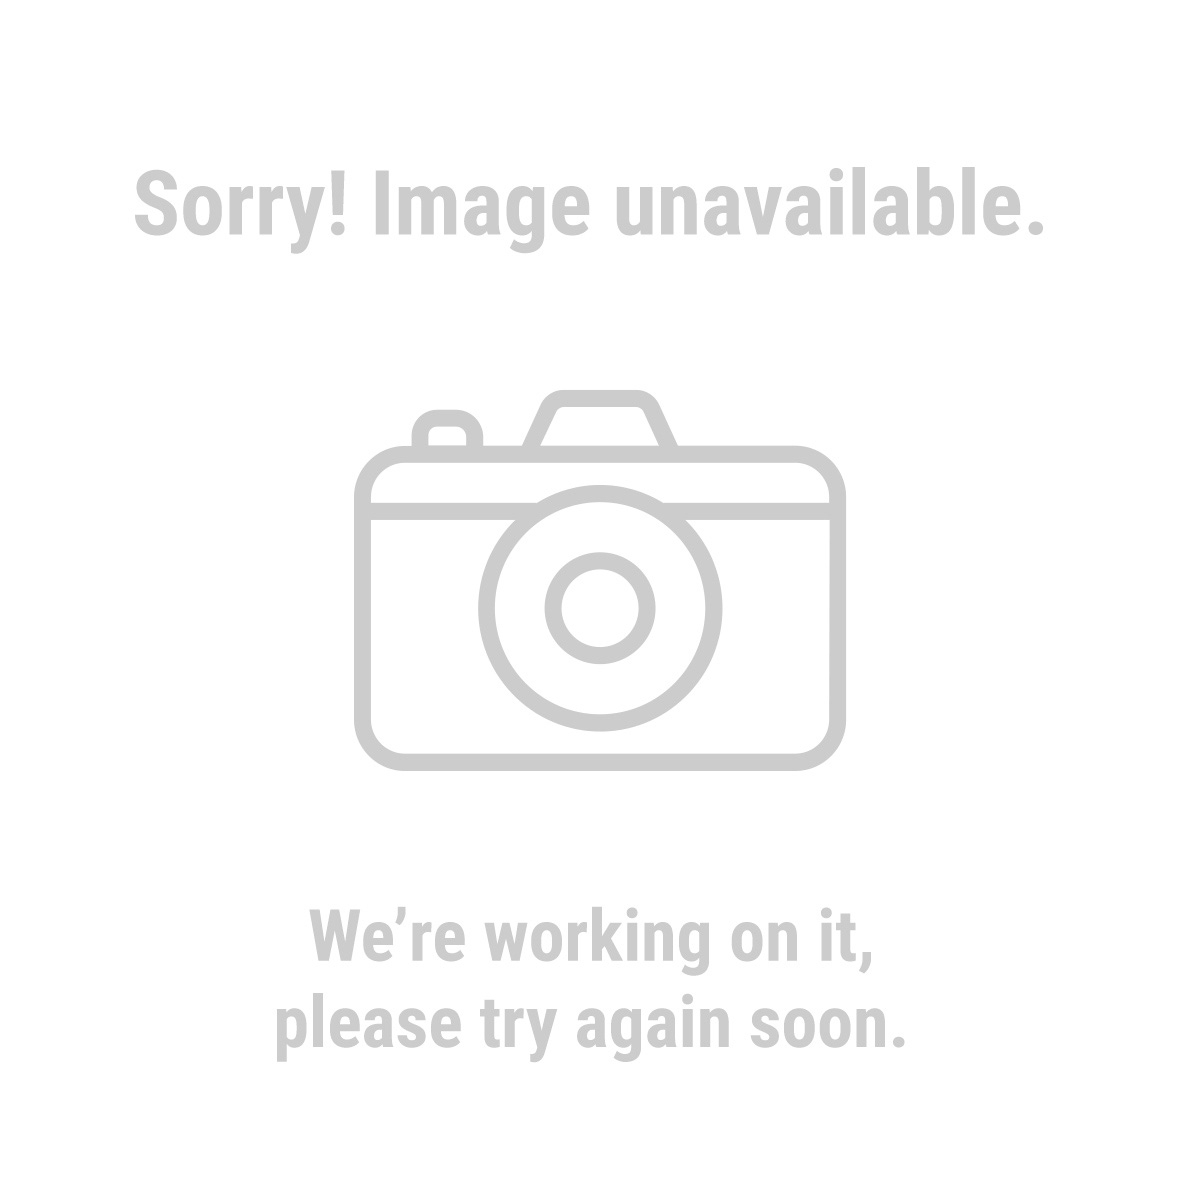 Cen-Tech 93854 Chalk Line Set, Red